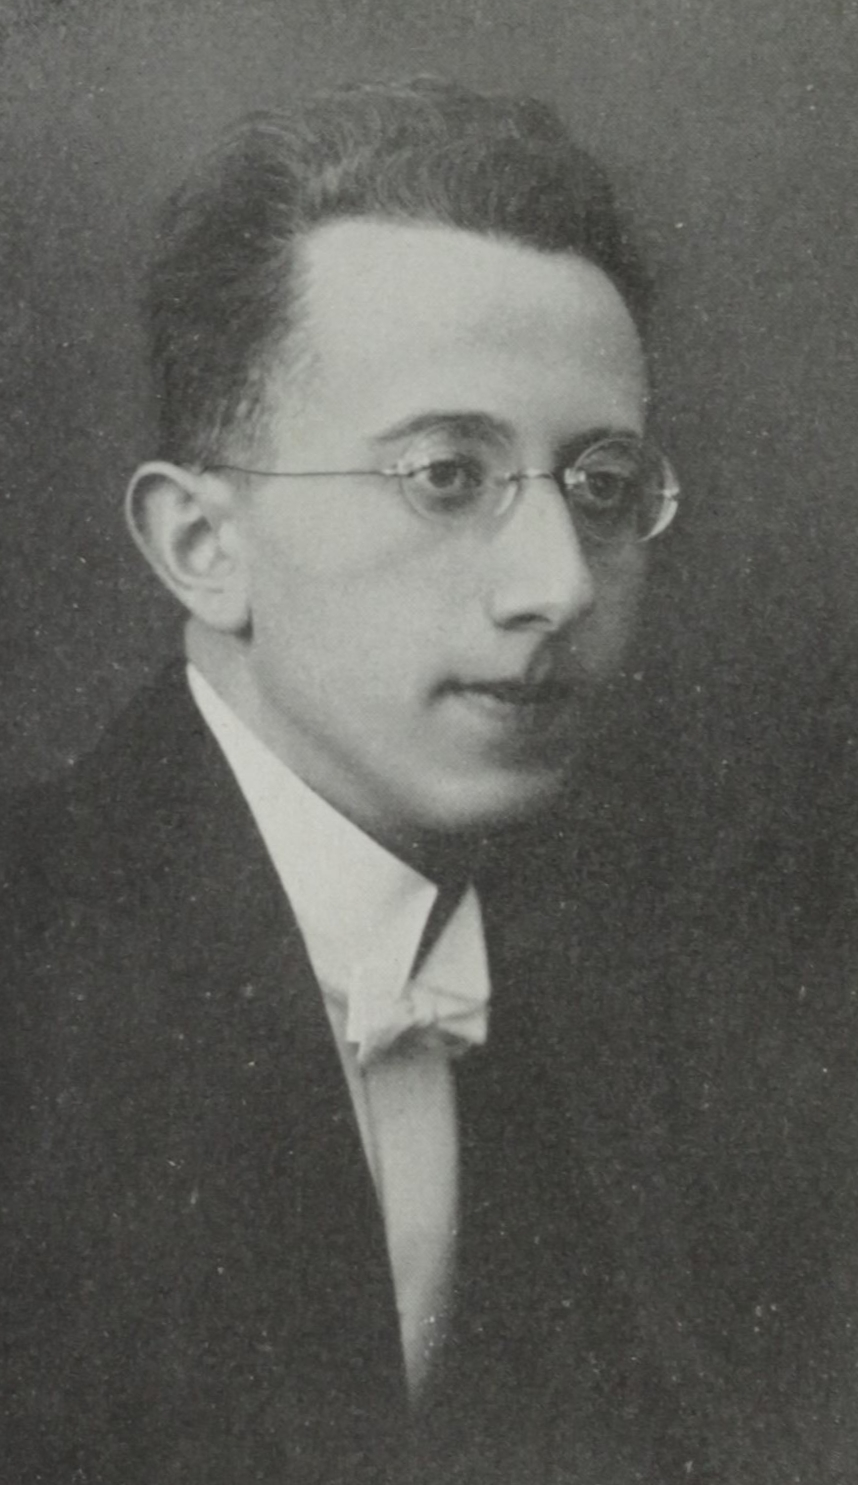 Music Director Fritz Mahler (first cousin once removed to Gustav Mahler)